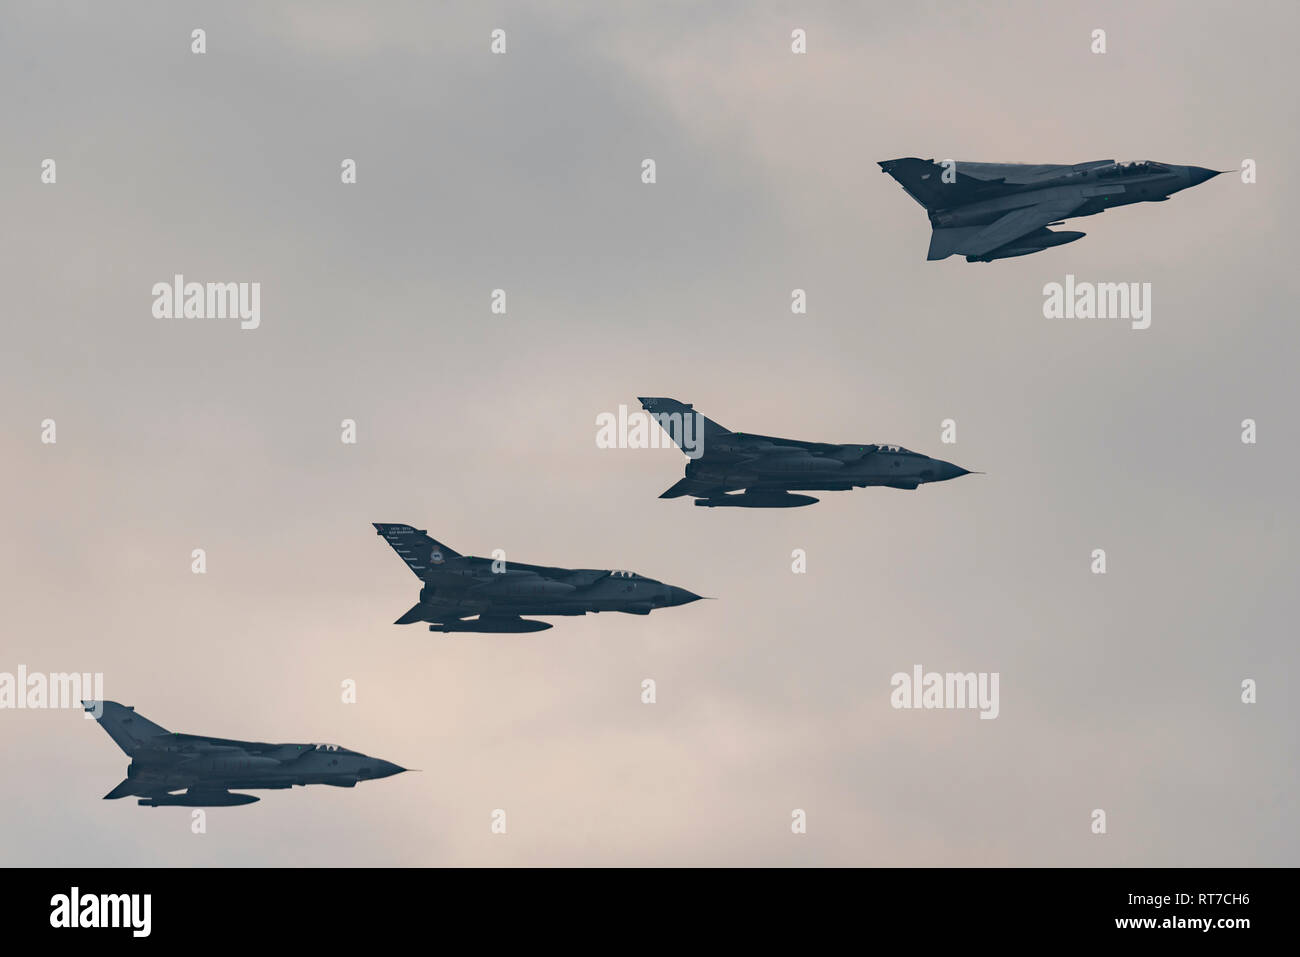 The Royal Air Force is saying farewell to the Panavia Tornado, of which it once operated over 200 of the bomber version. RAF Marham is home to IX and 31 squadrons who share around 16 of the remaining  Tornado GR4 jets before the venerable type ends its service in a few weeks. RAF Tornadoes saw service in the Gulf and Iraq wars as well as peacekeeping missions. Nine Tornadoes flew a formation flypast to mark the drawdown. They will never fly in such numbers again as they continue to be withdrawn Stock Photo